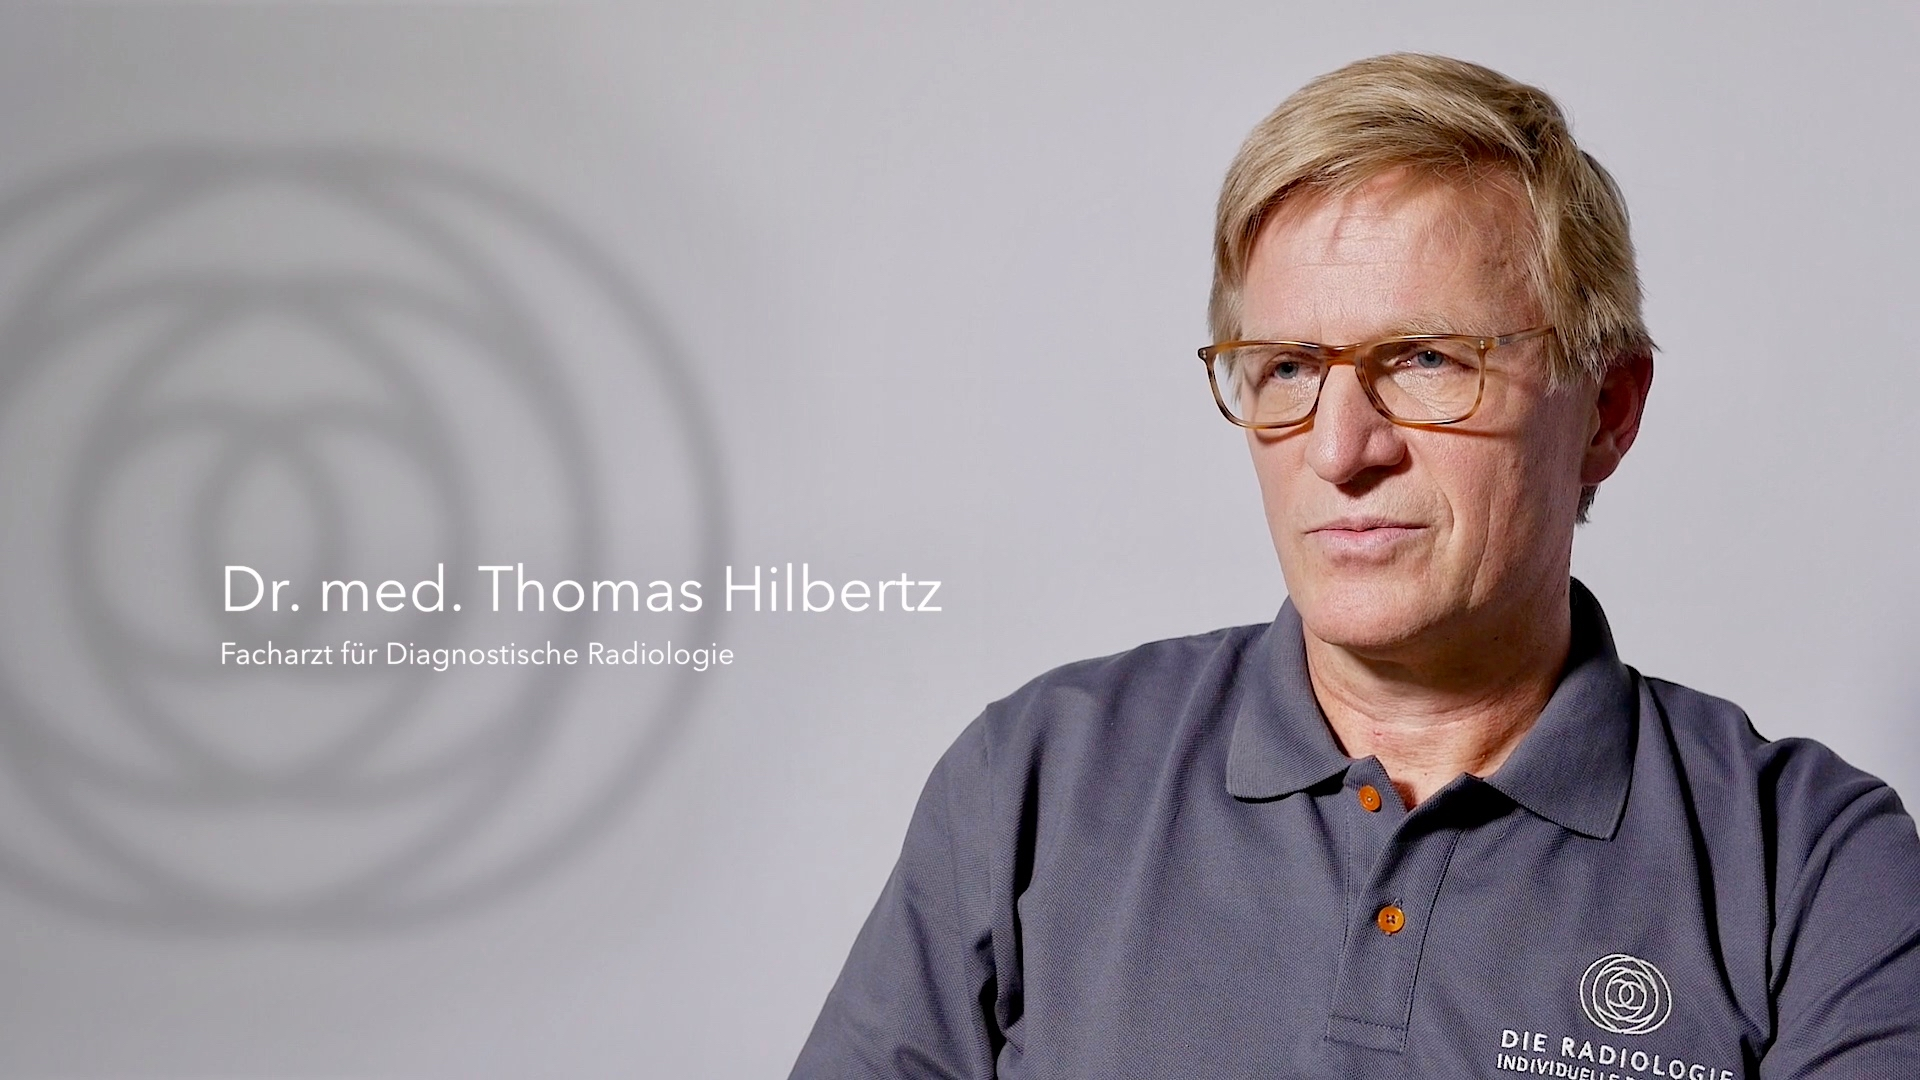 Dr. Hilbertz (MD), expert in breast diagnostics